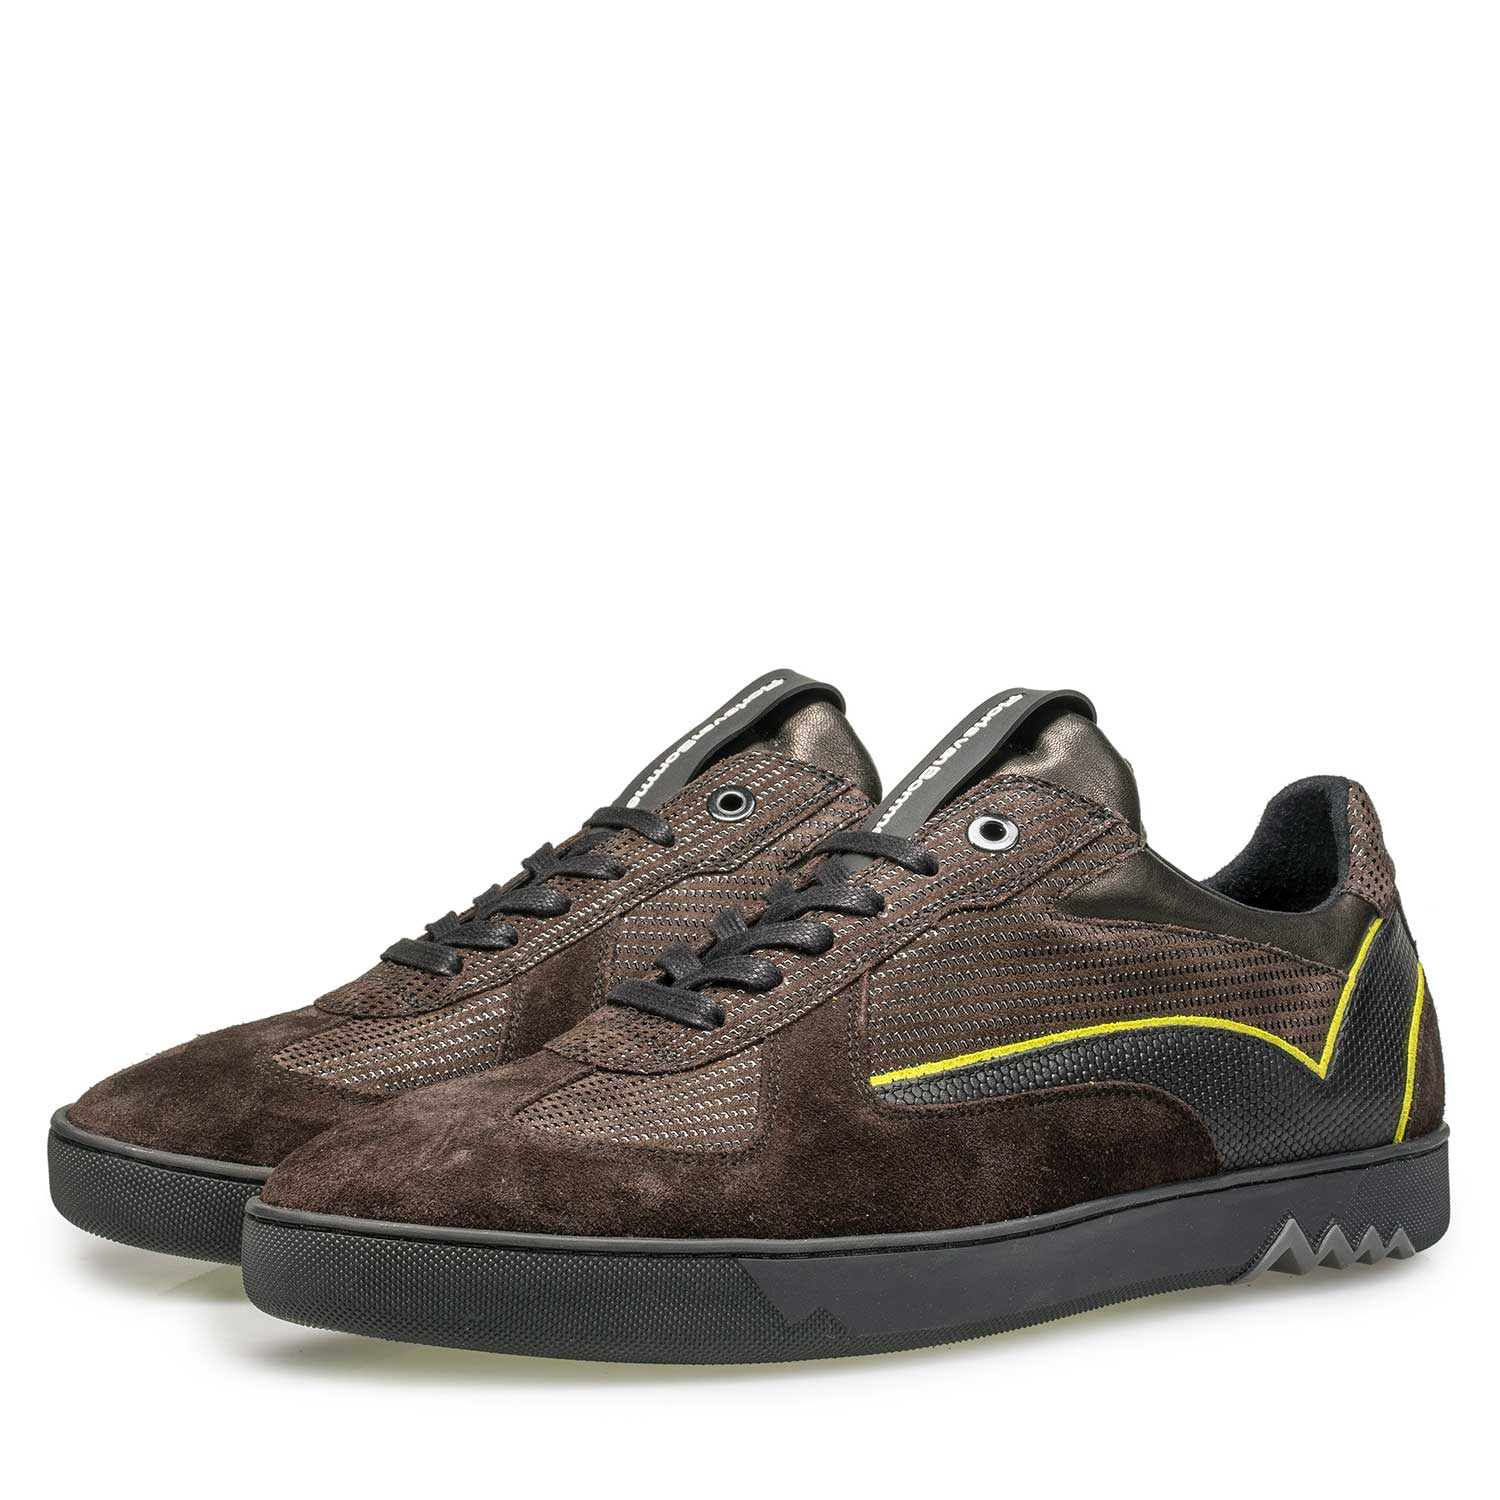 16242/05 - Dark brown suede sneaker with pattern